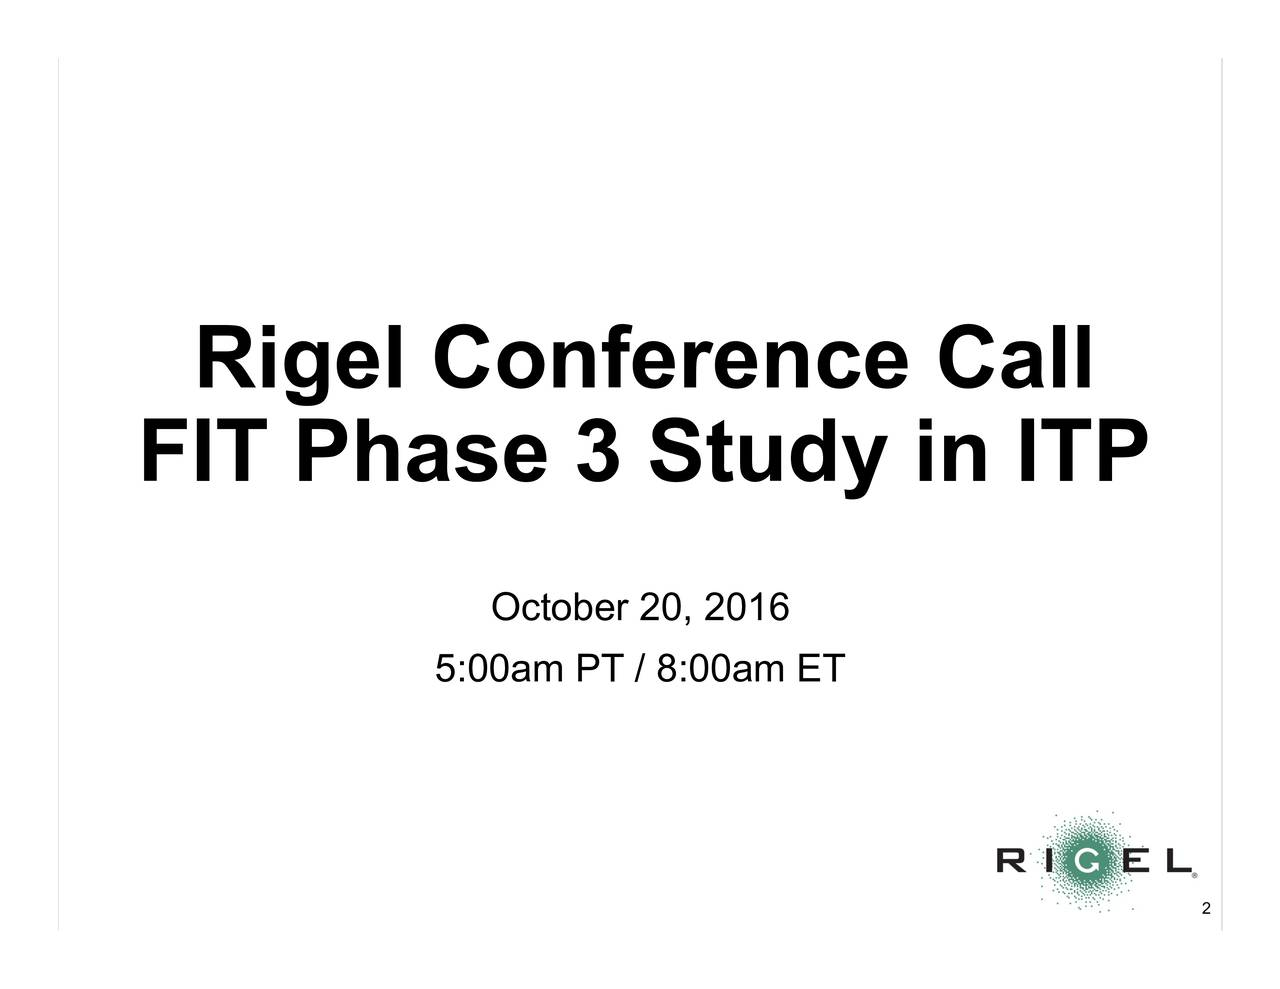 FIT Phase 3 Study in ITP October 20, 2016 5:00am PT / 8:00am ET 2